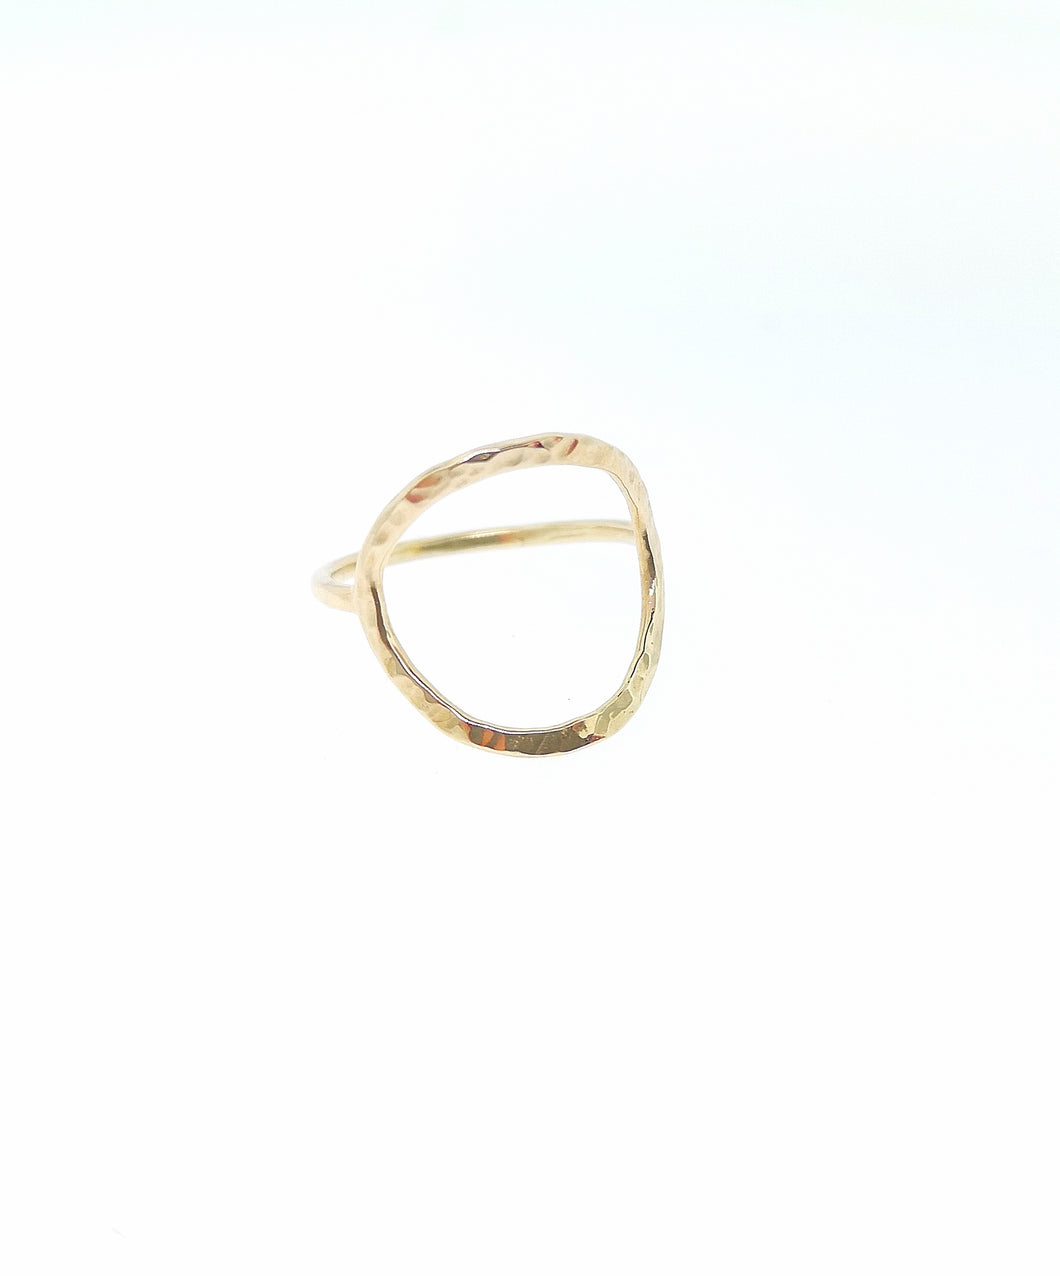 Full Circle Ring -9 Karat Yellow Gold